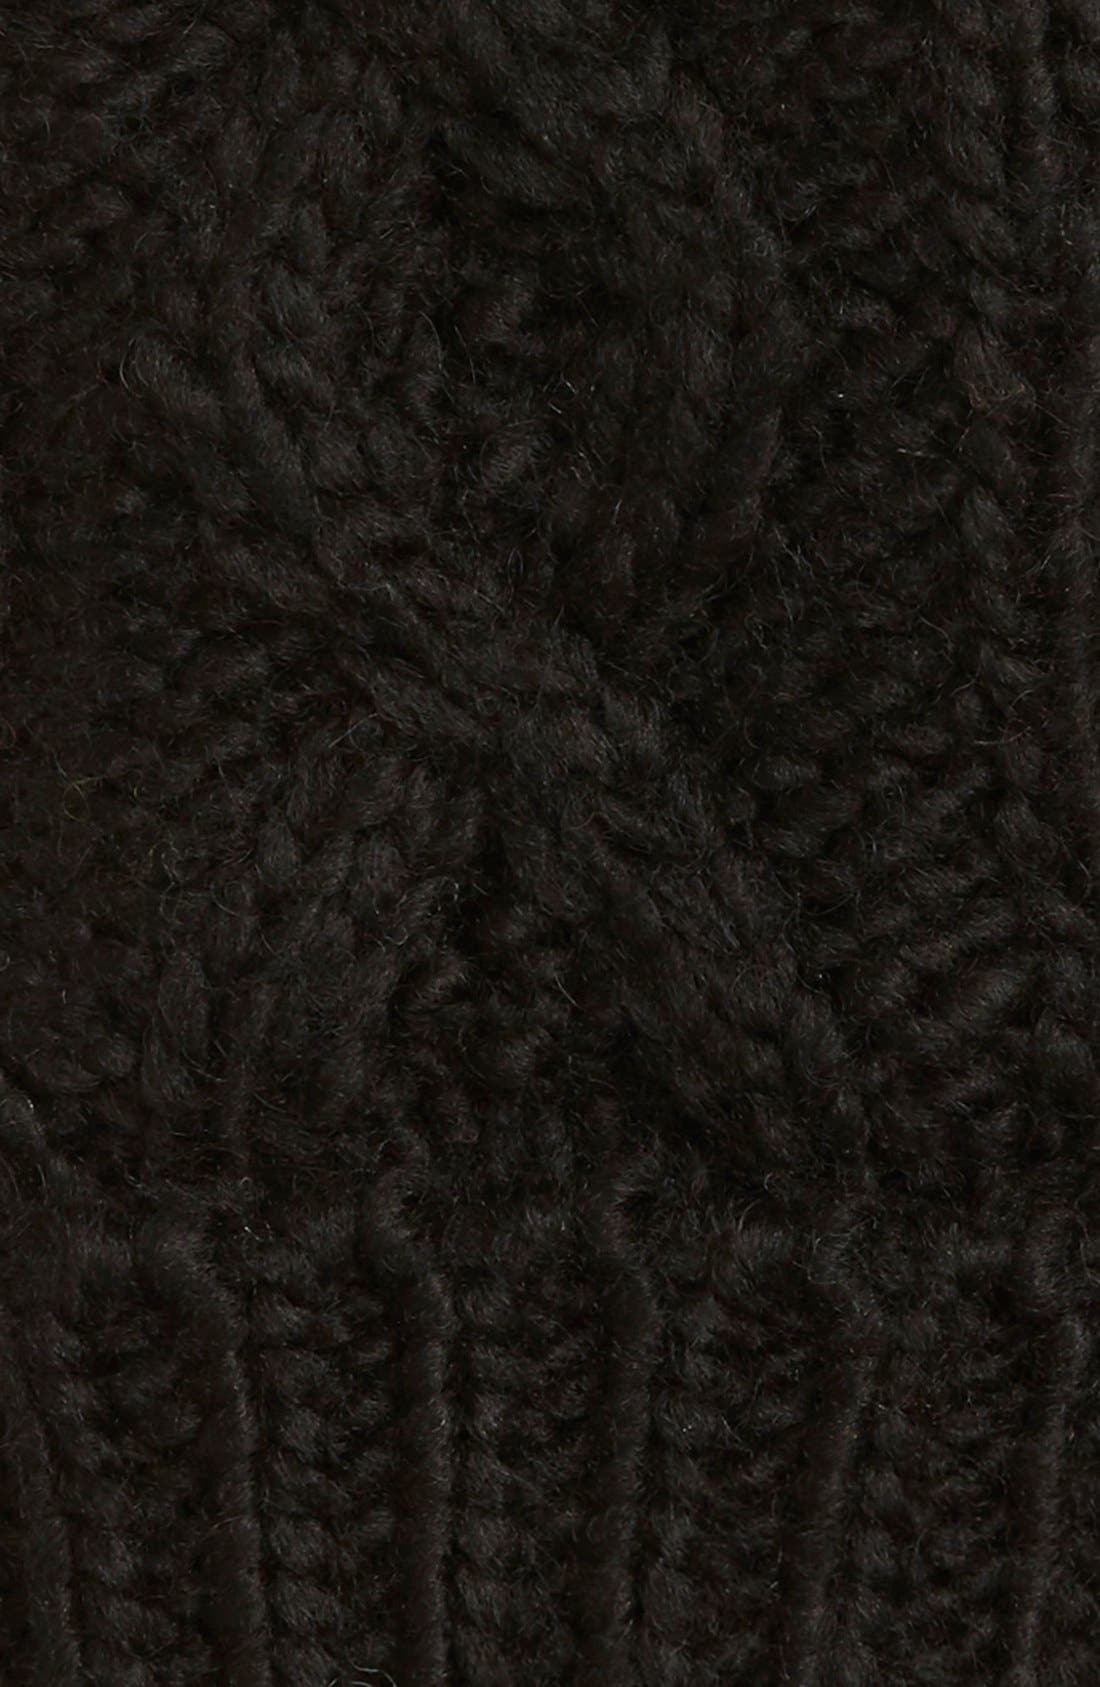 'Betto' Cable Knit Mittens,                             Alternate thumbnail 2, color,                             Black